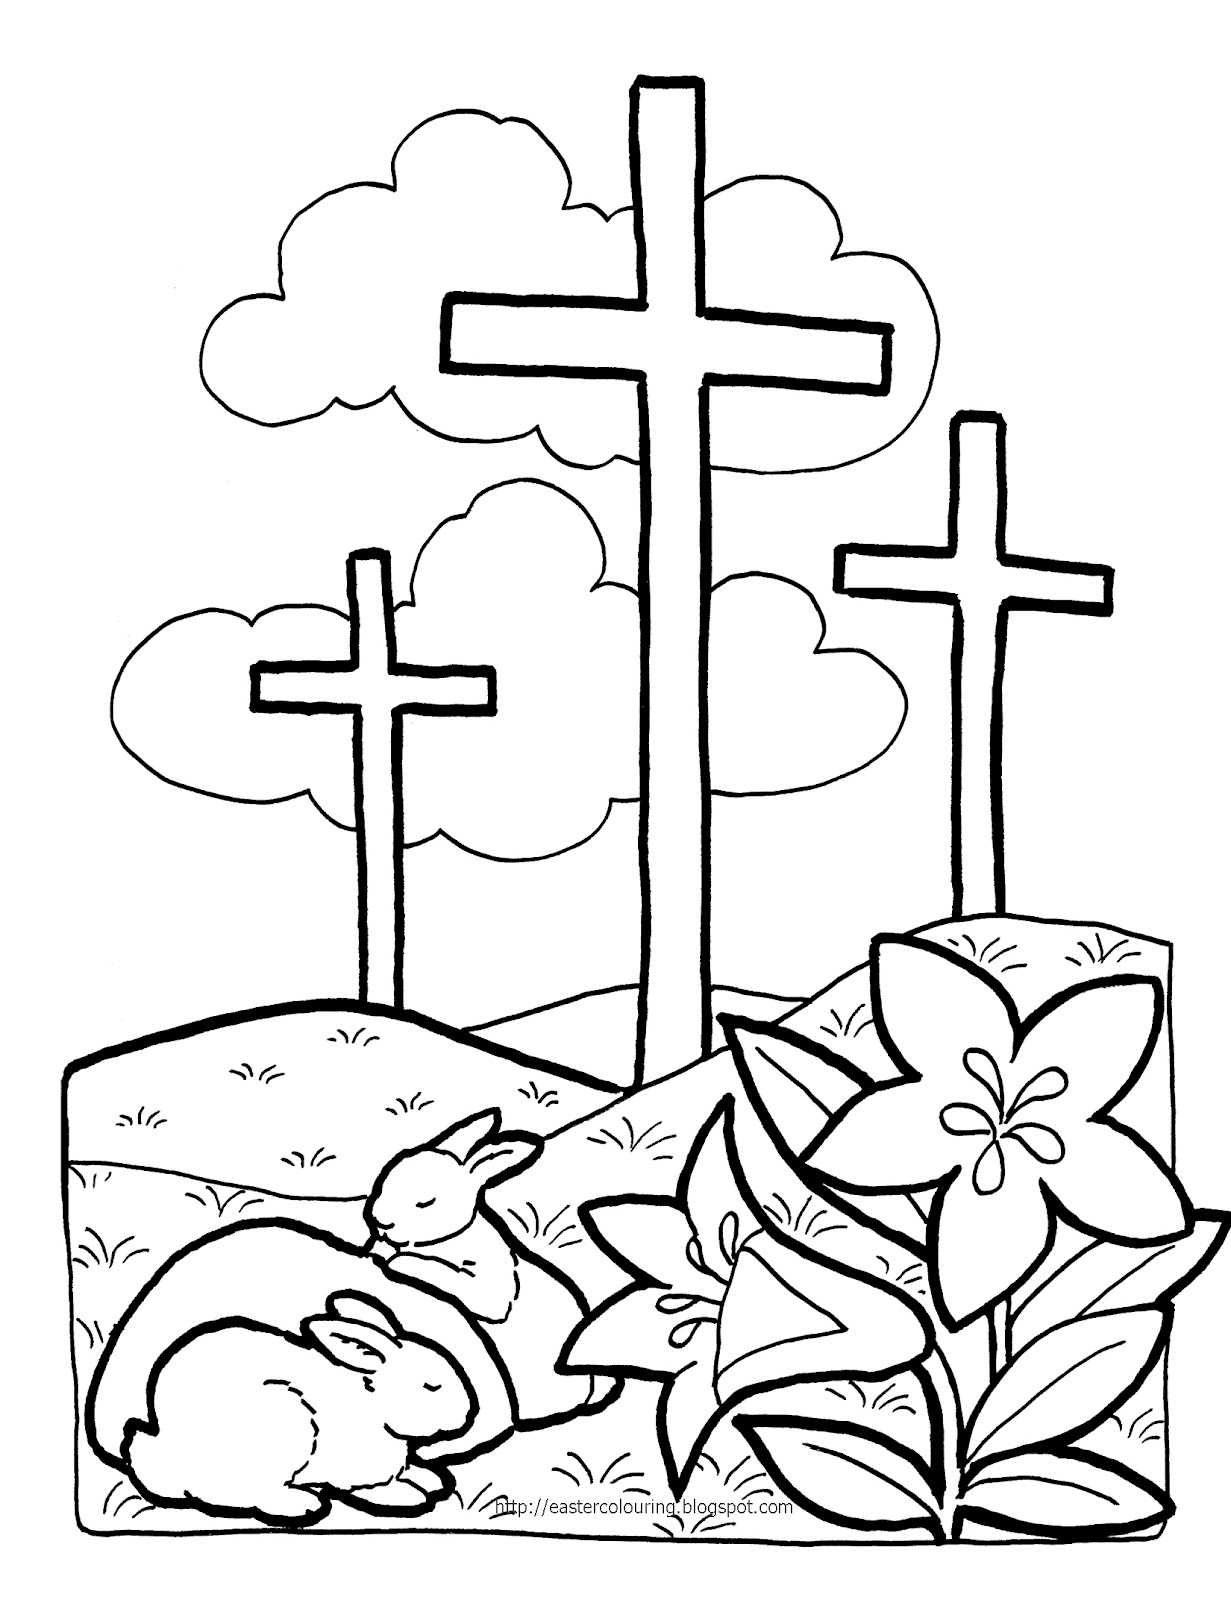 printable christian coloring pages - Coloring Pages Christian